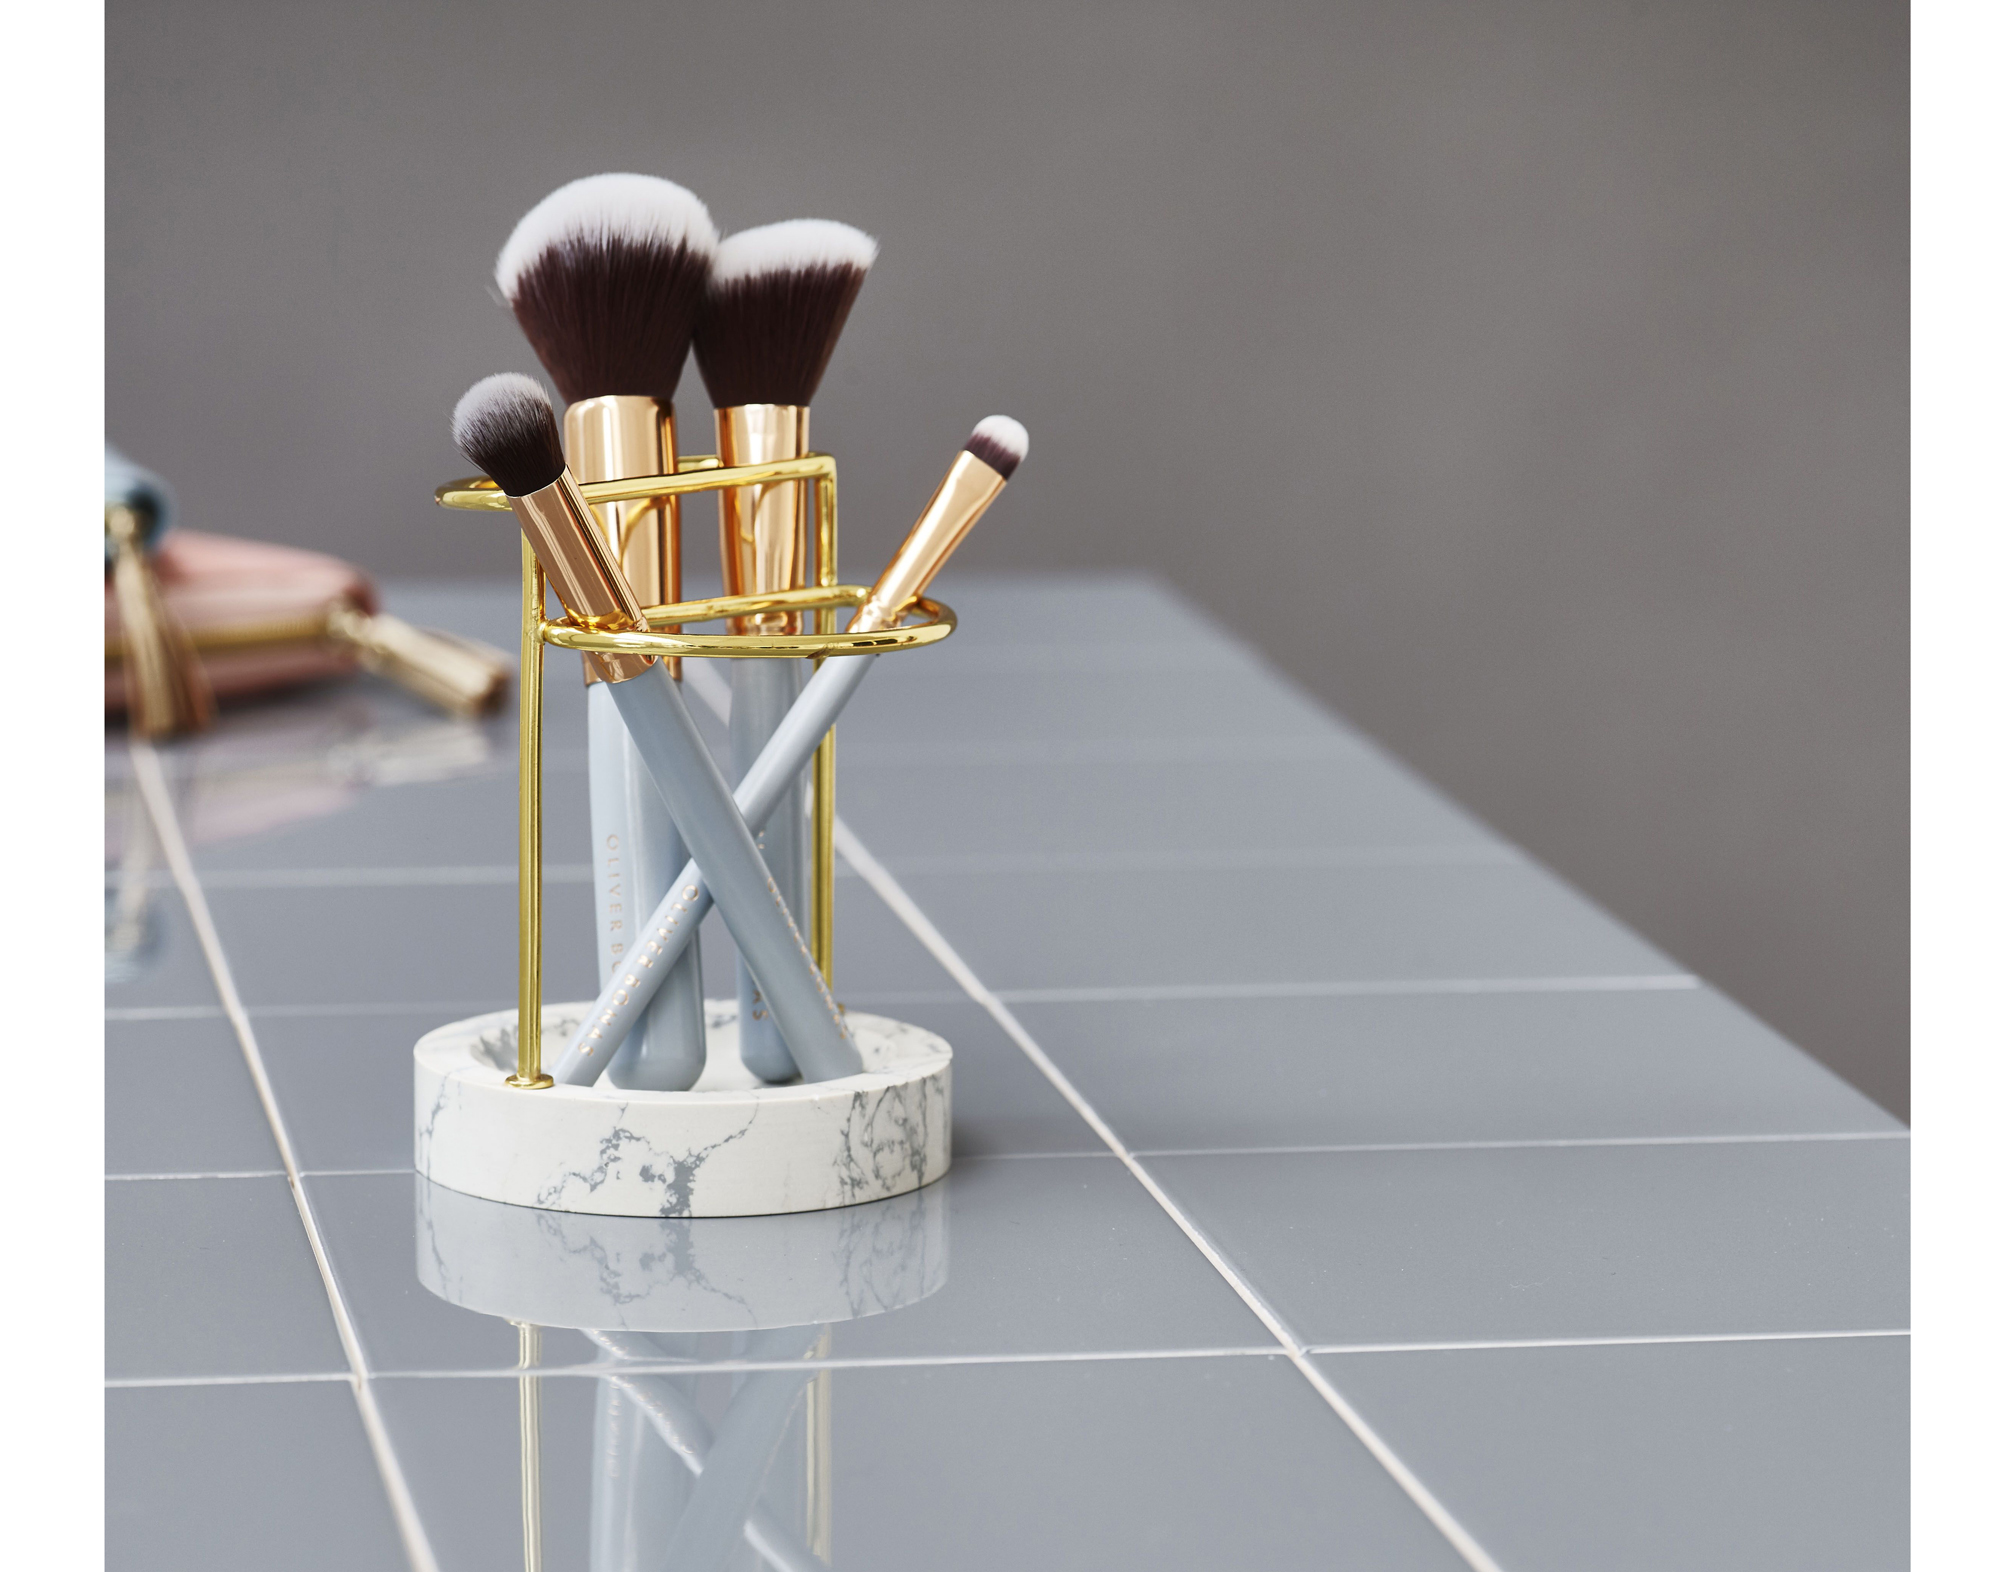 Stonedust Brush Holder, £24; Set of Make Up Brushes, £38 for pack of five with compact mirror, Oliver Bonas